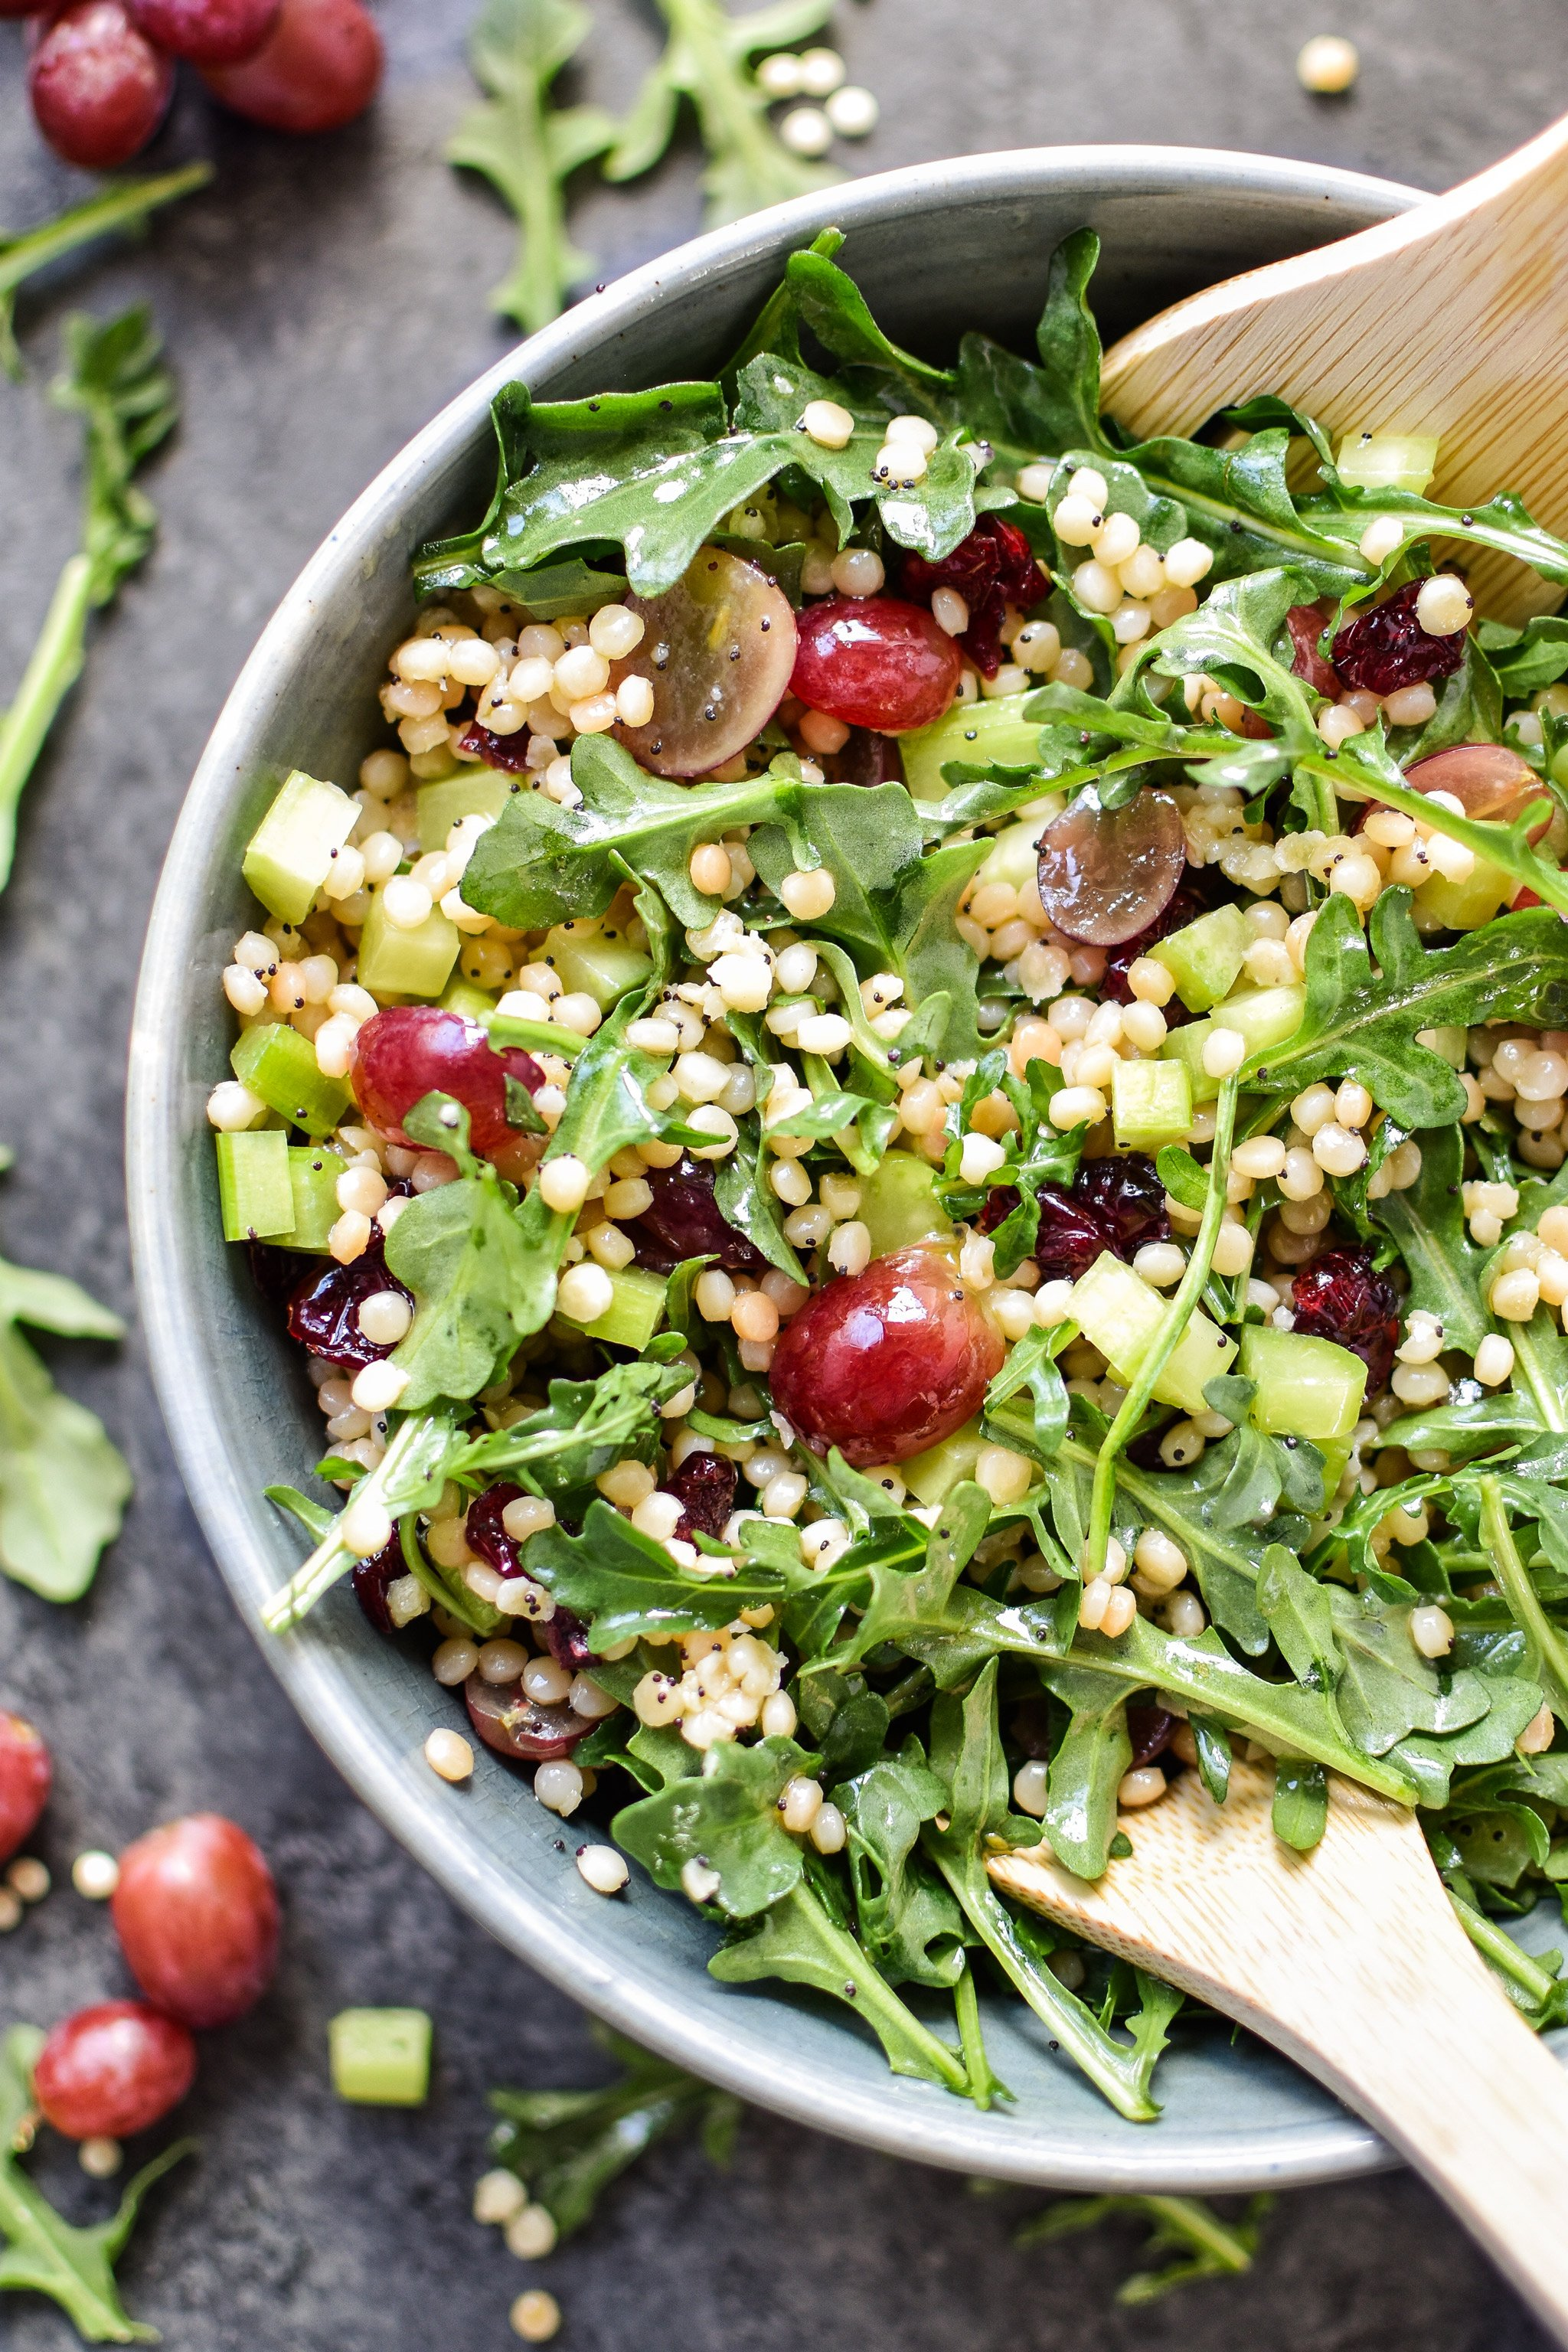 Make-Ahead Lemon Poppyseed Couscous Arugula Salad viewed from above in a serving bowl with utensils.